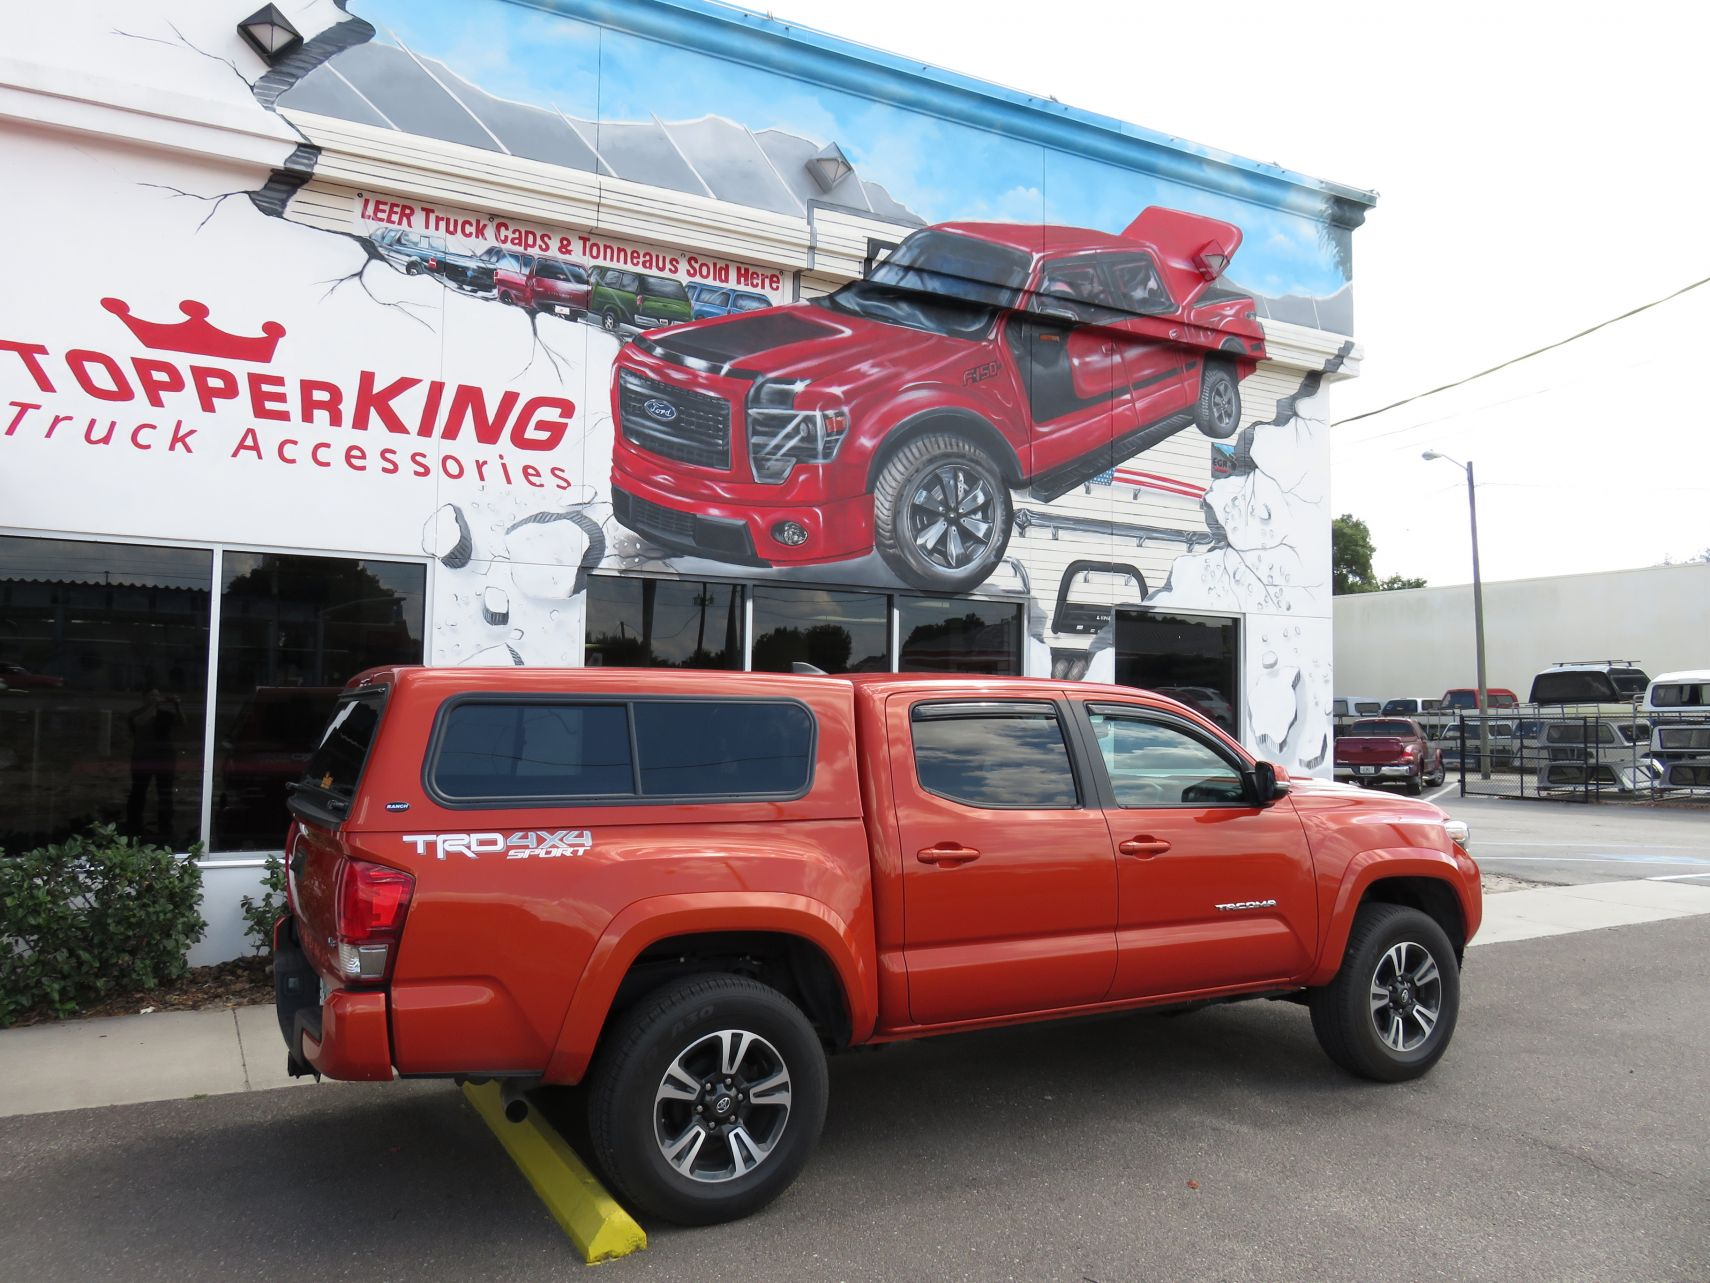 2017 Toyota Tacoma with Ranch Sierra, Vent Visors, Hitch, Bedliner, Tint by TopperKING in Brandon, FL 813-689-2449 or Clearwater, FL 727-530-9066. Call Now!